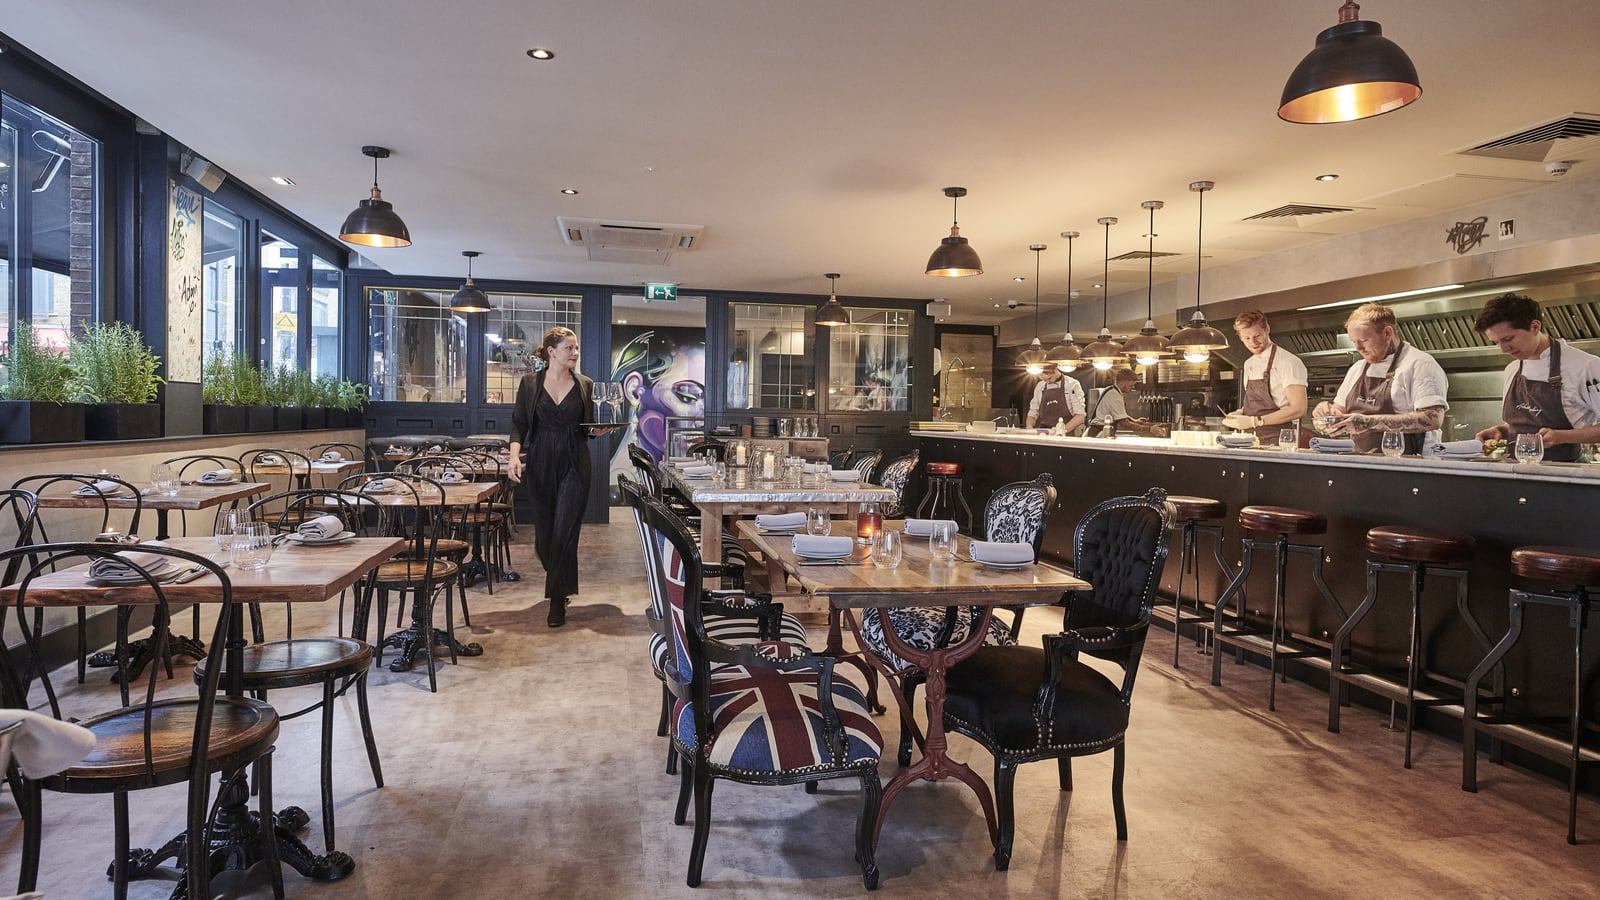 Daniel Watkins moves to new restaurant, The Frog Hoxton